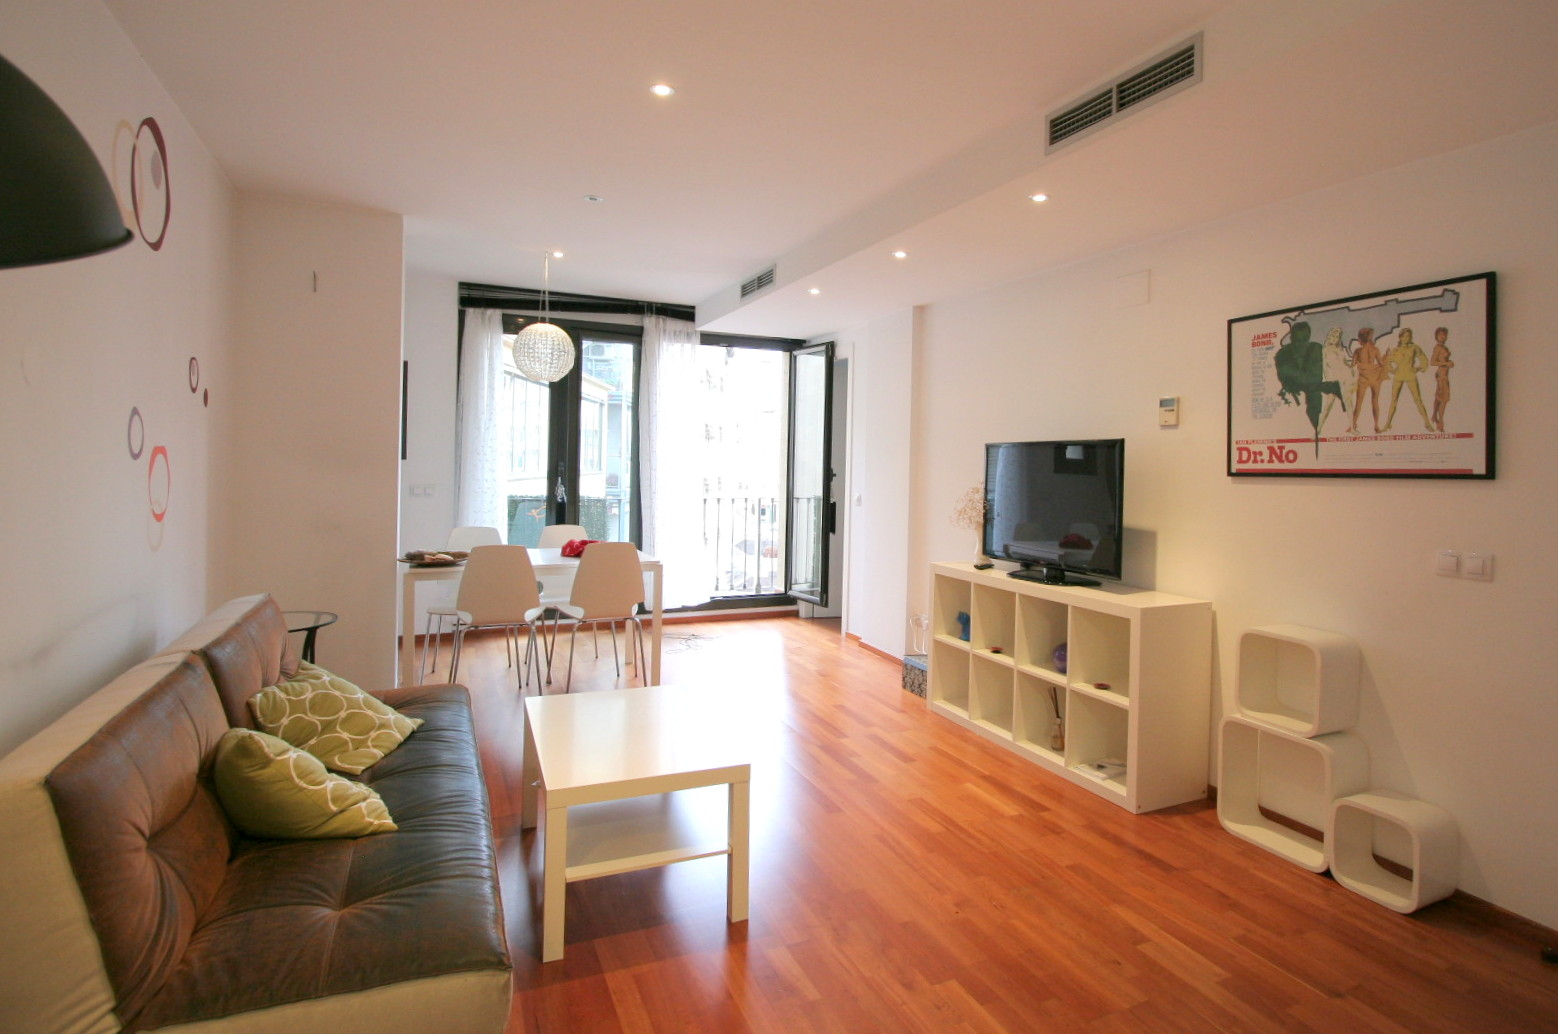 Easyapartmentrental charming 2 bedroom apartment near plaza catalunya Two bedroom apartments